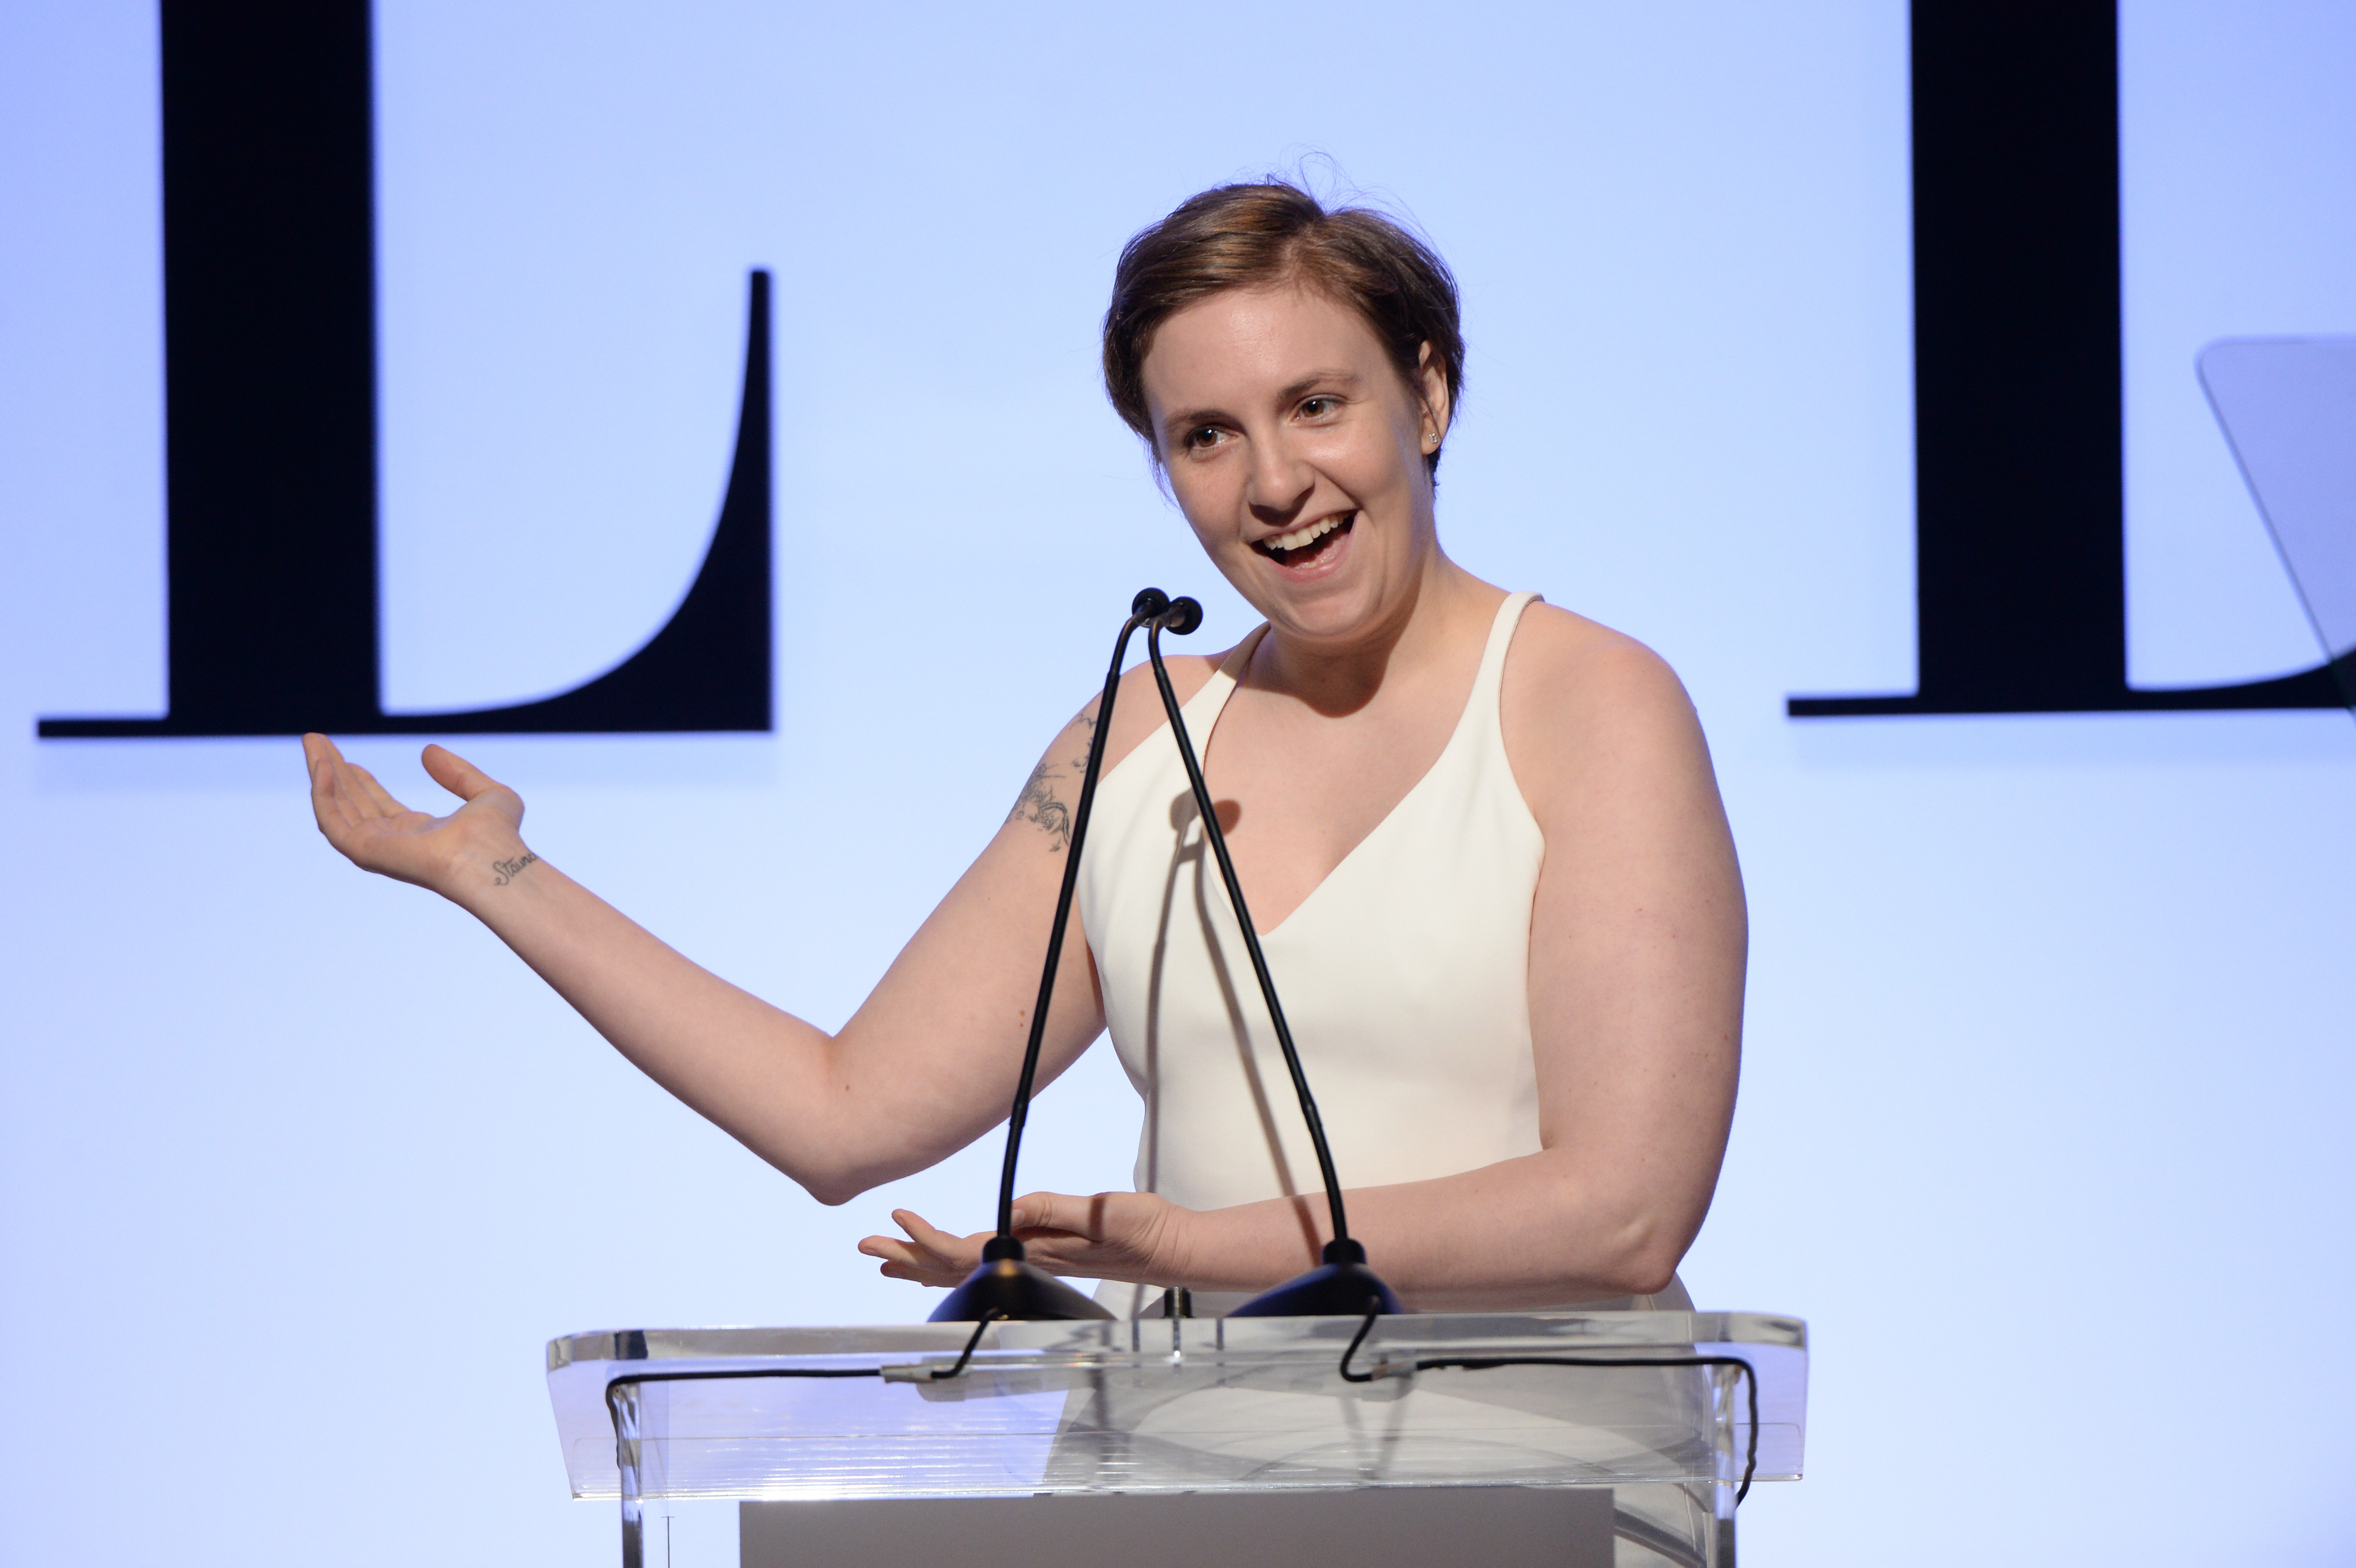 Actress Lena Dunham speaks onstage during the 22nd Annual ELLE Women in Hollywood Awards presented by Calvin Klein Collection, L'Oréal Paris, and David Yurman at the Four Seasons Los Angeles at Beverly Hills on October 19, 2015 in Beverly Hills, Calif.